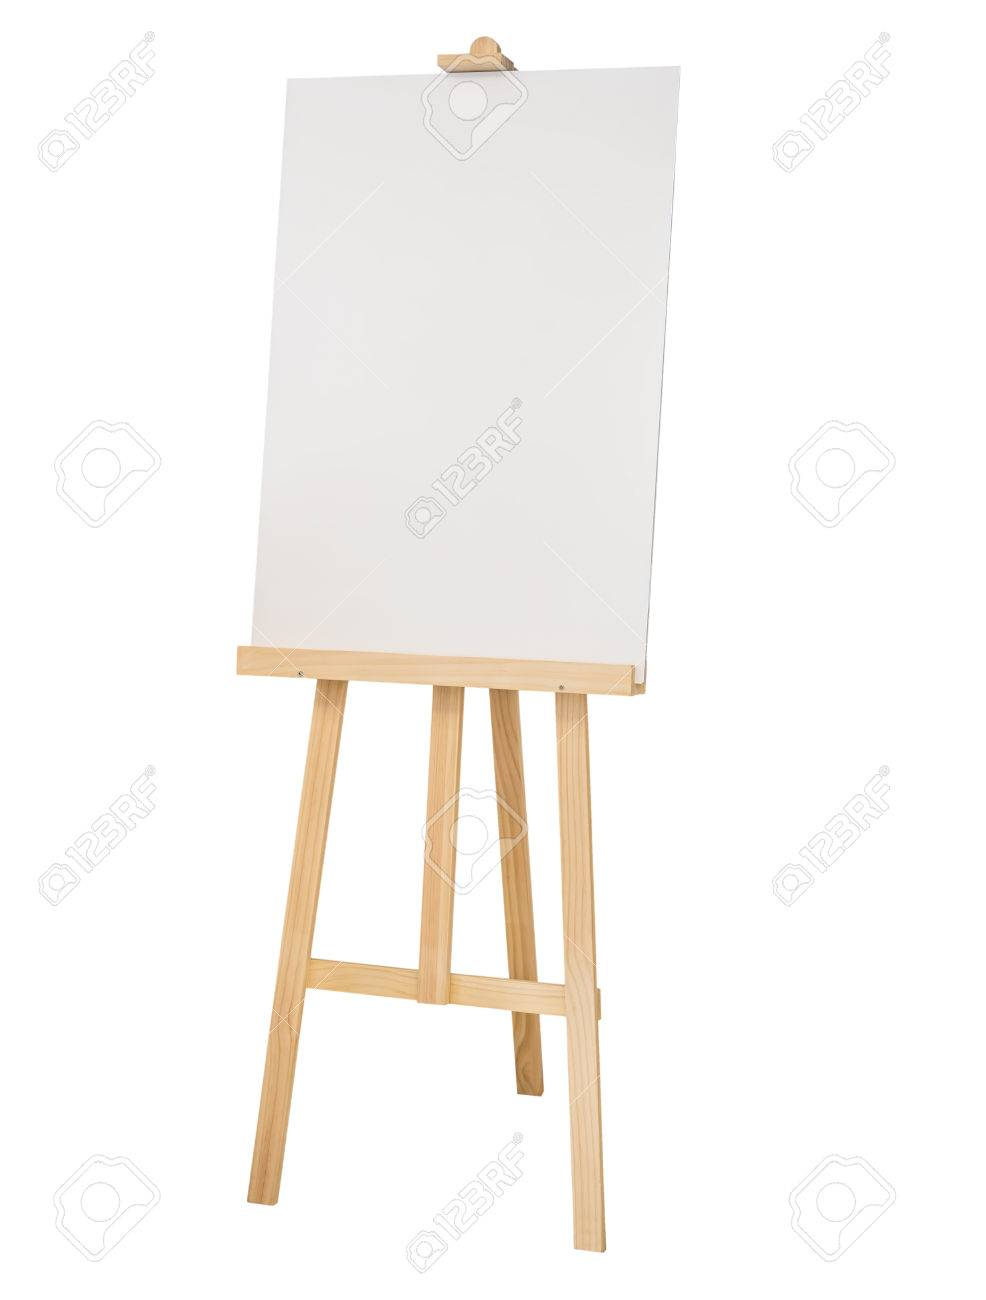 painting stand wooden easel with blank canvas poster sign board